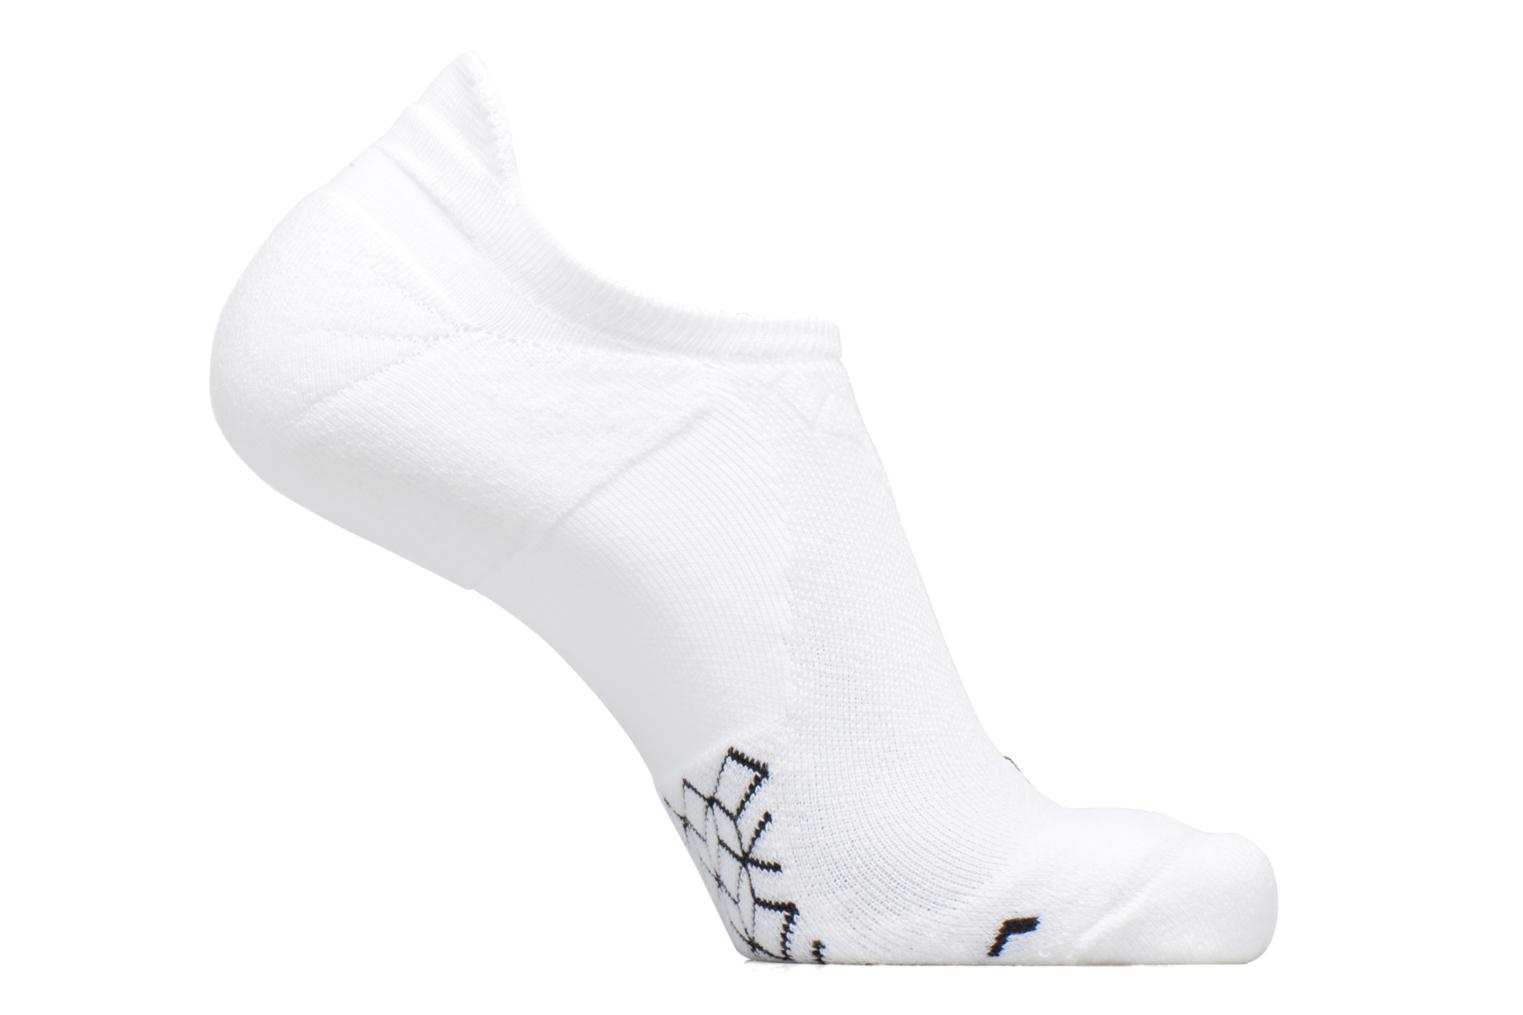 Unisex Nike Dry Elite Cushioned No-Show Running Sock White/black